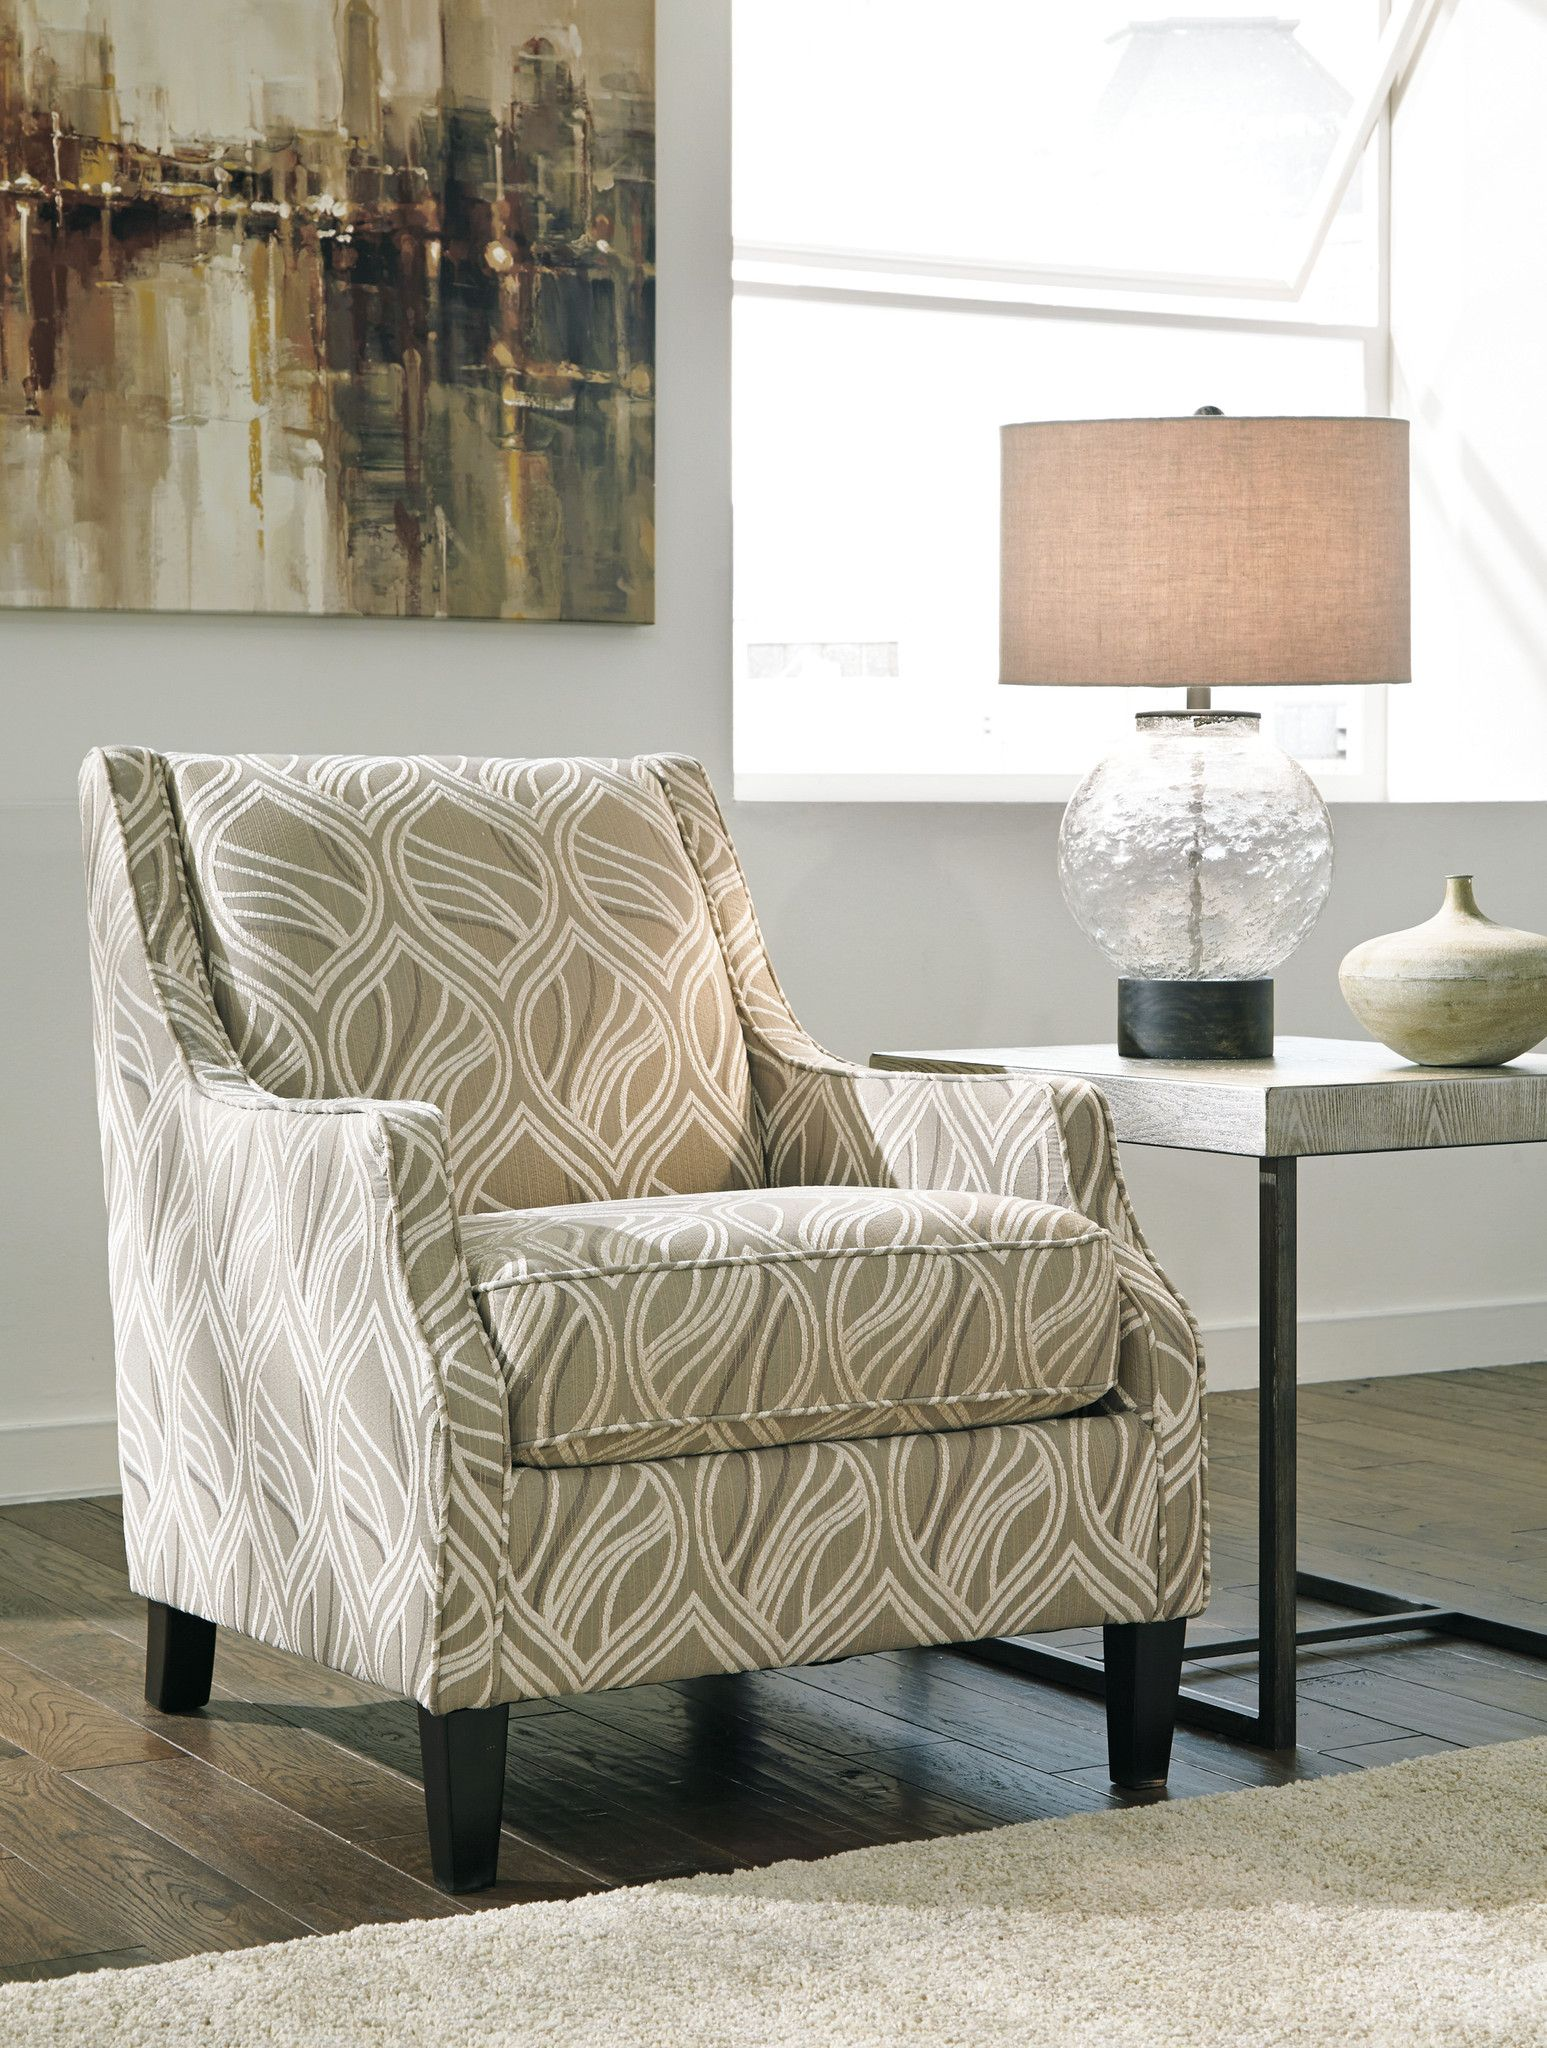 Locklee Chair By Ashley Furniture At Kensington Furniture With